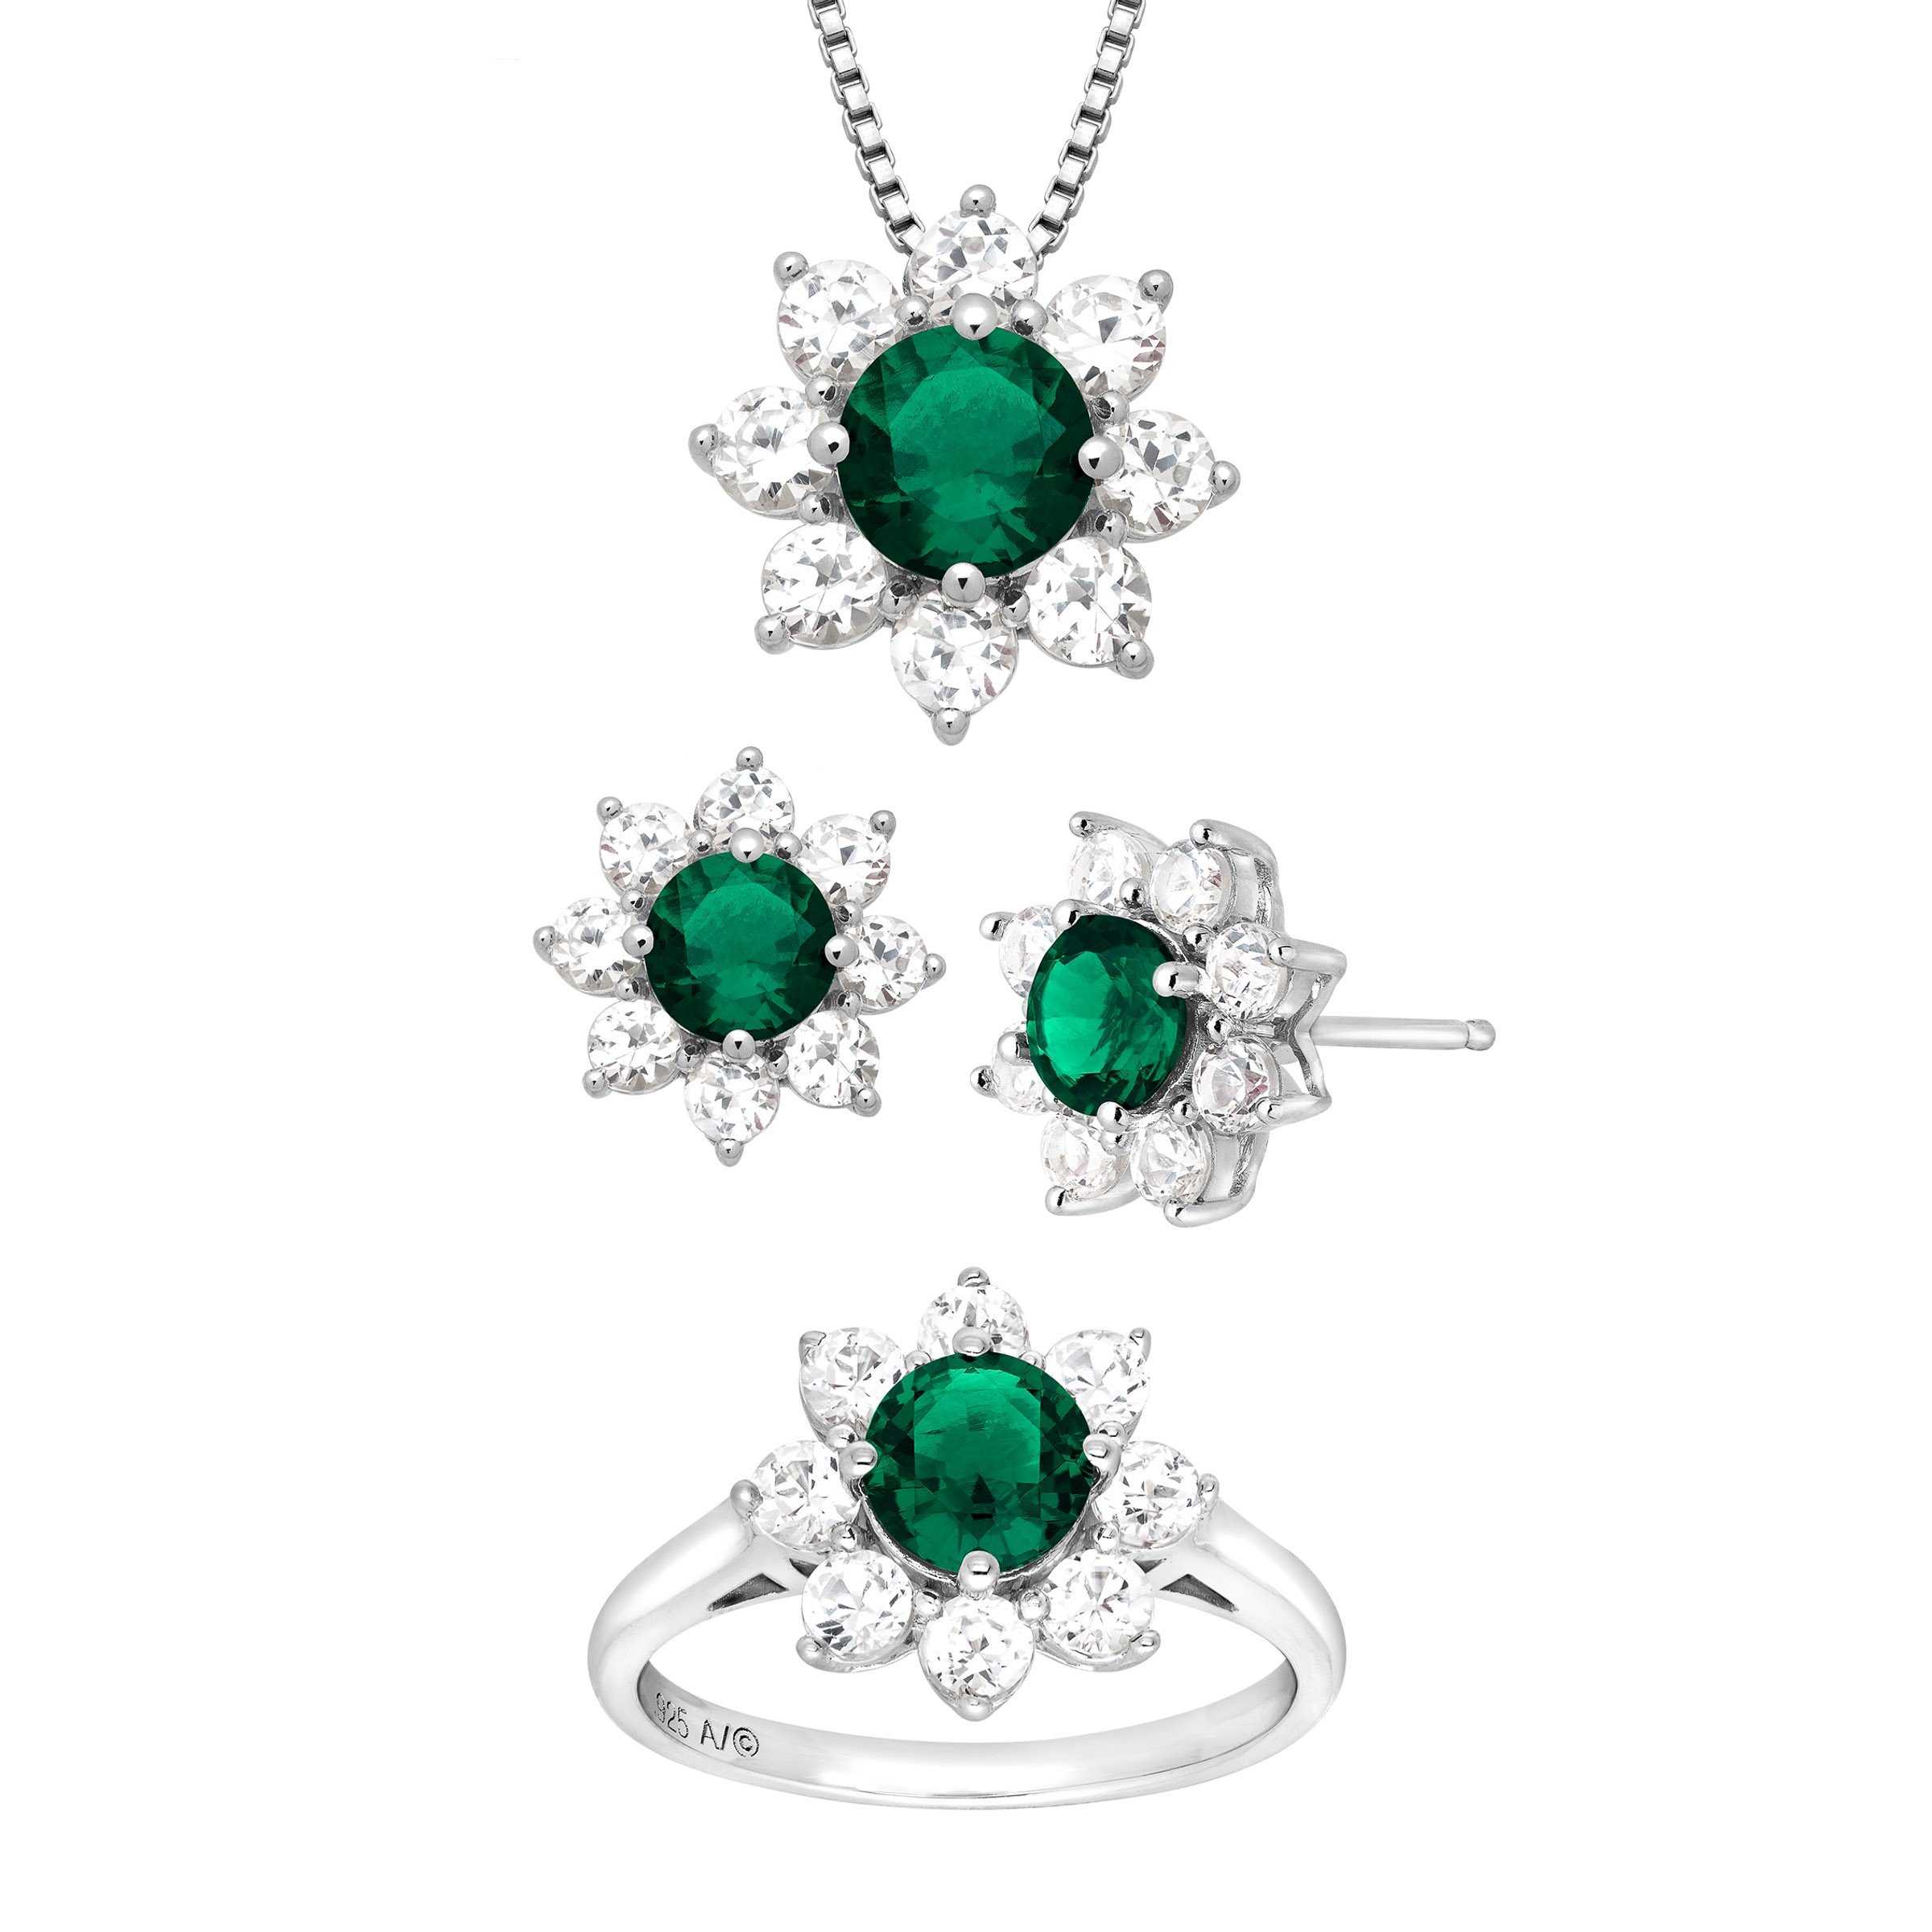 5 7/8 ct Created Emerald & White Sapphire Flower Pendant, Ring & Earring Set in Sterling Silver